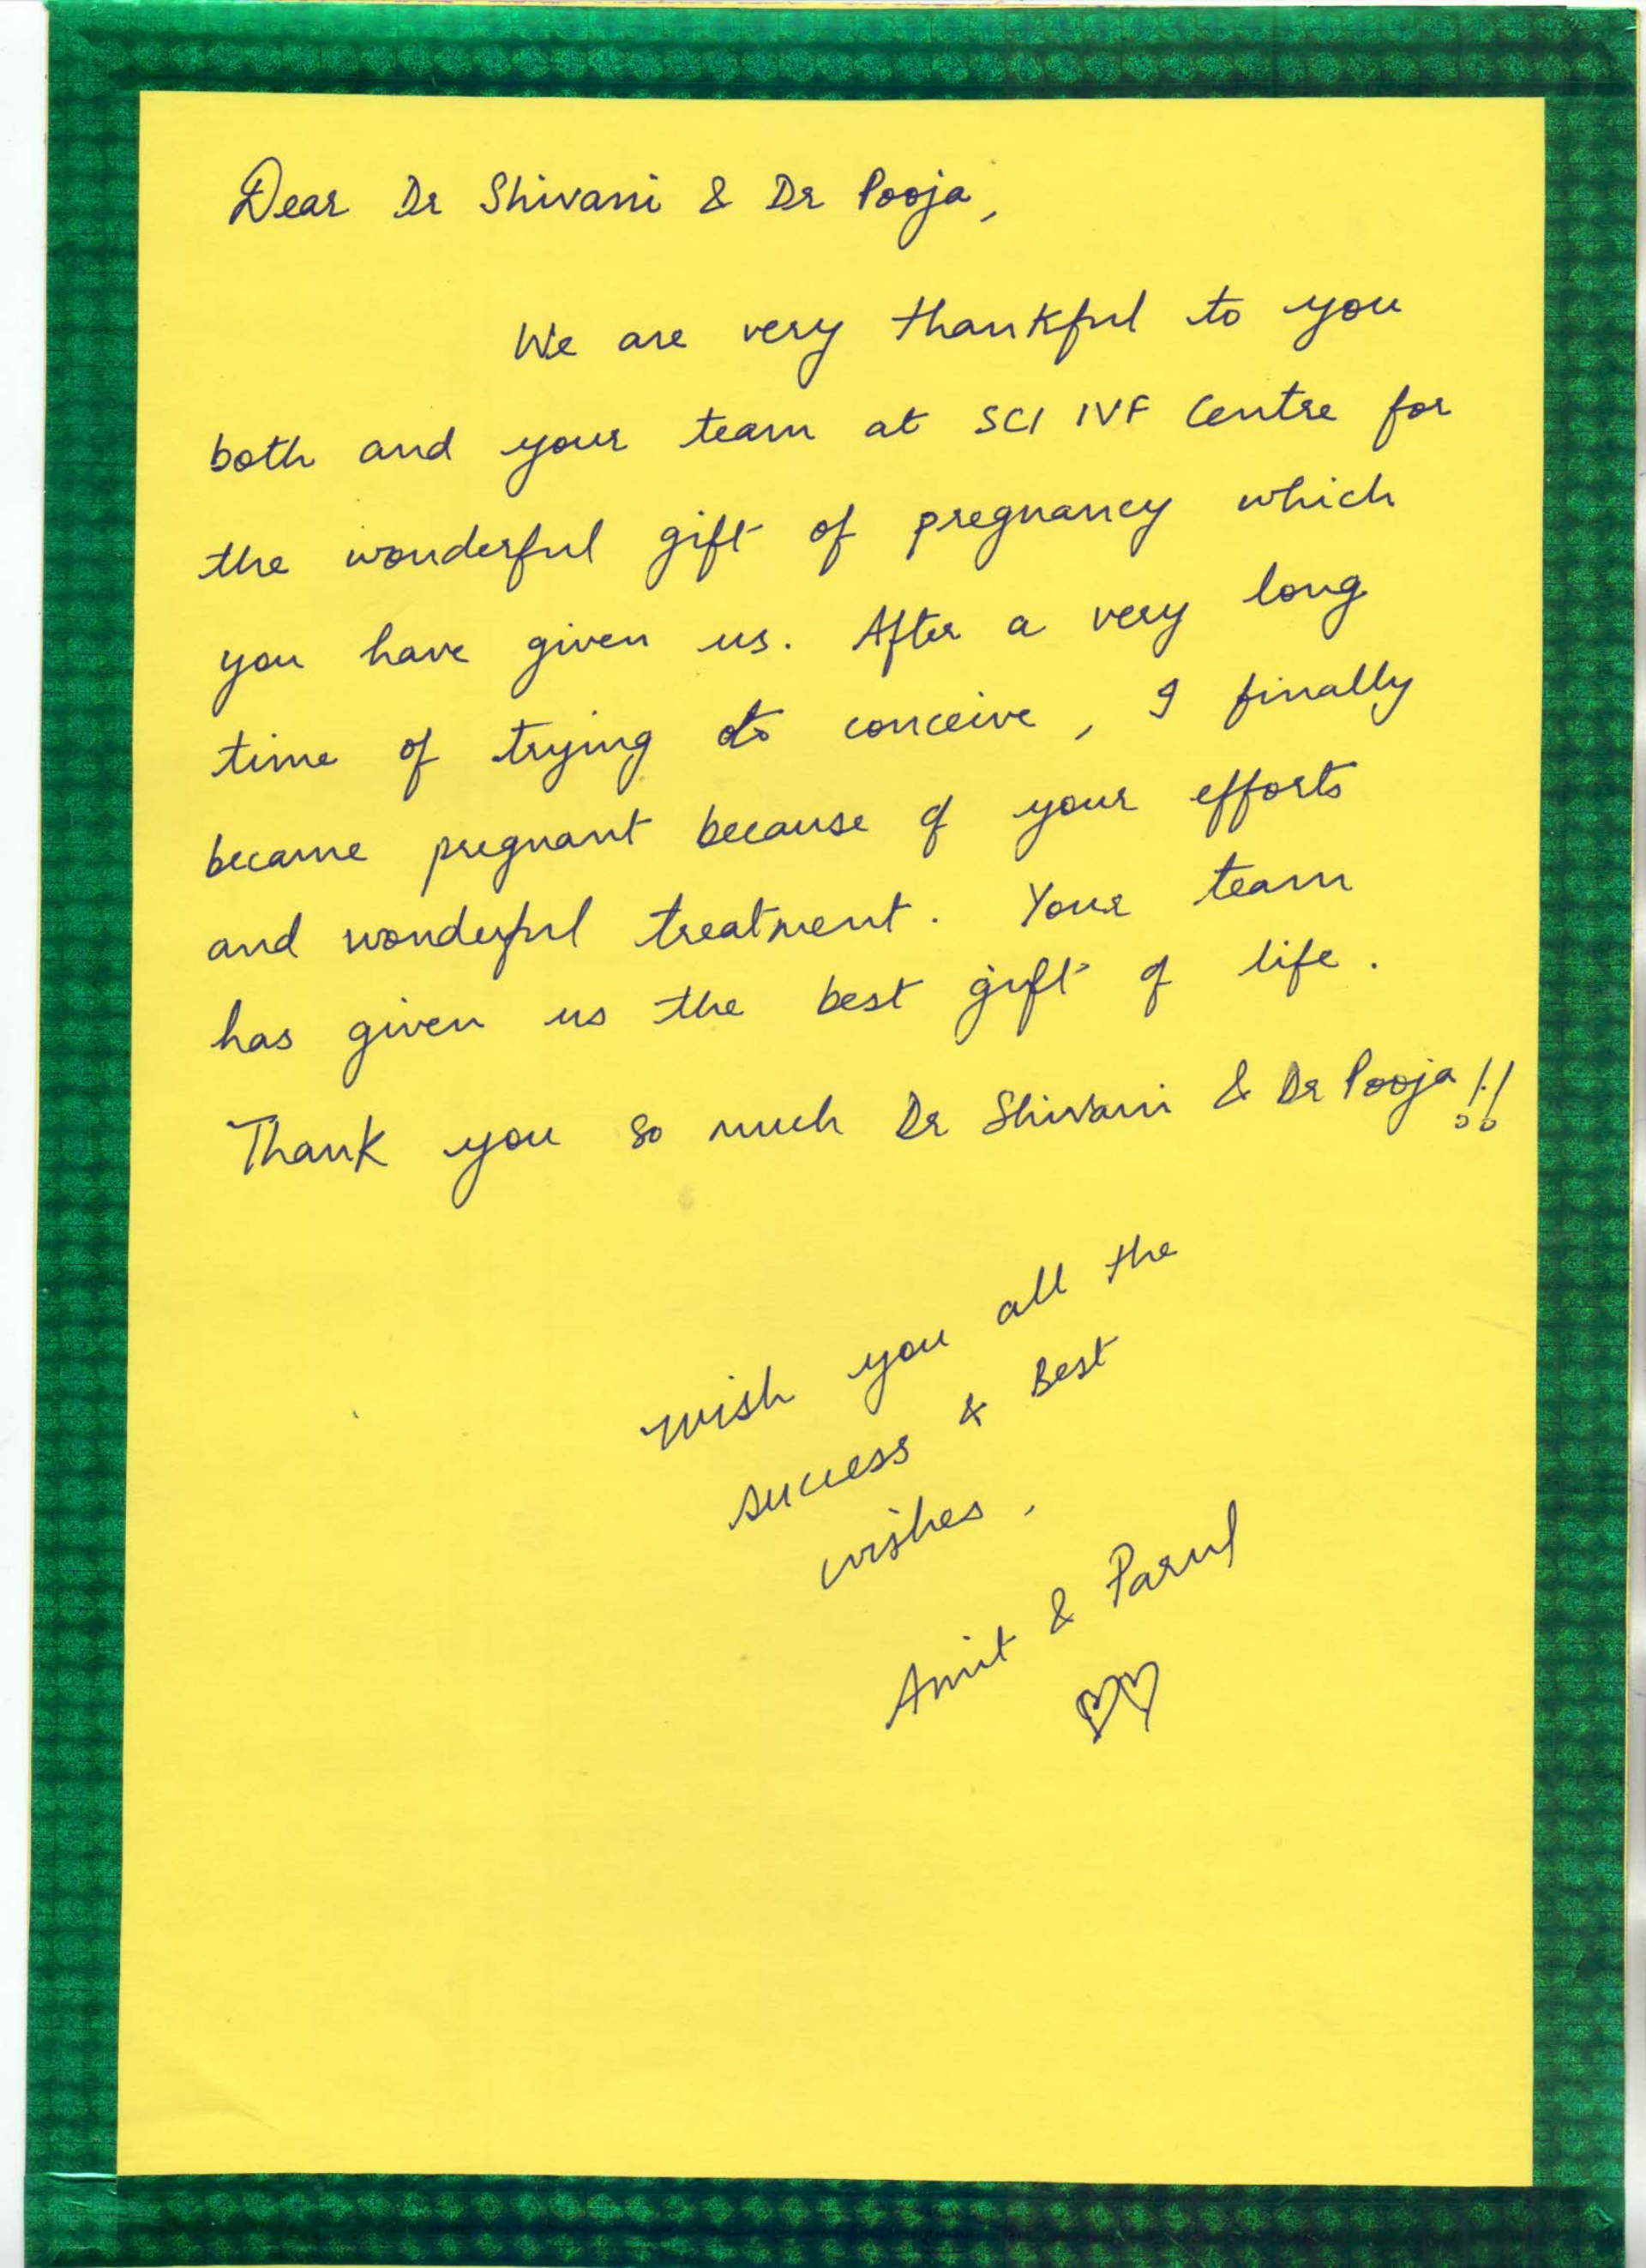 Thank you Message to Dr. Shivani Gour & Dr. Pooja